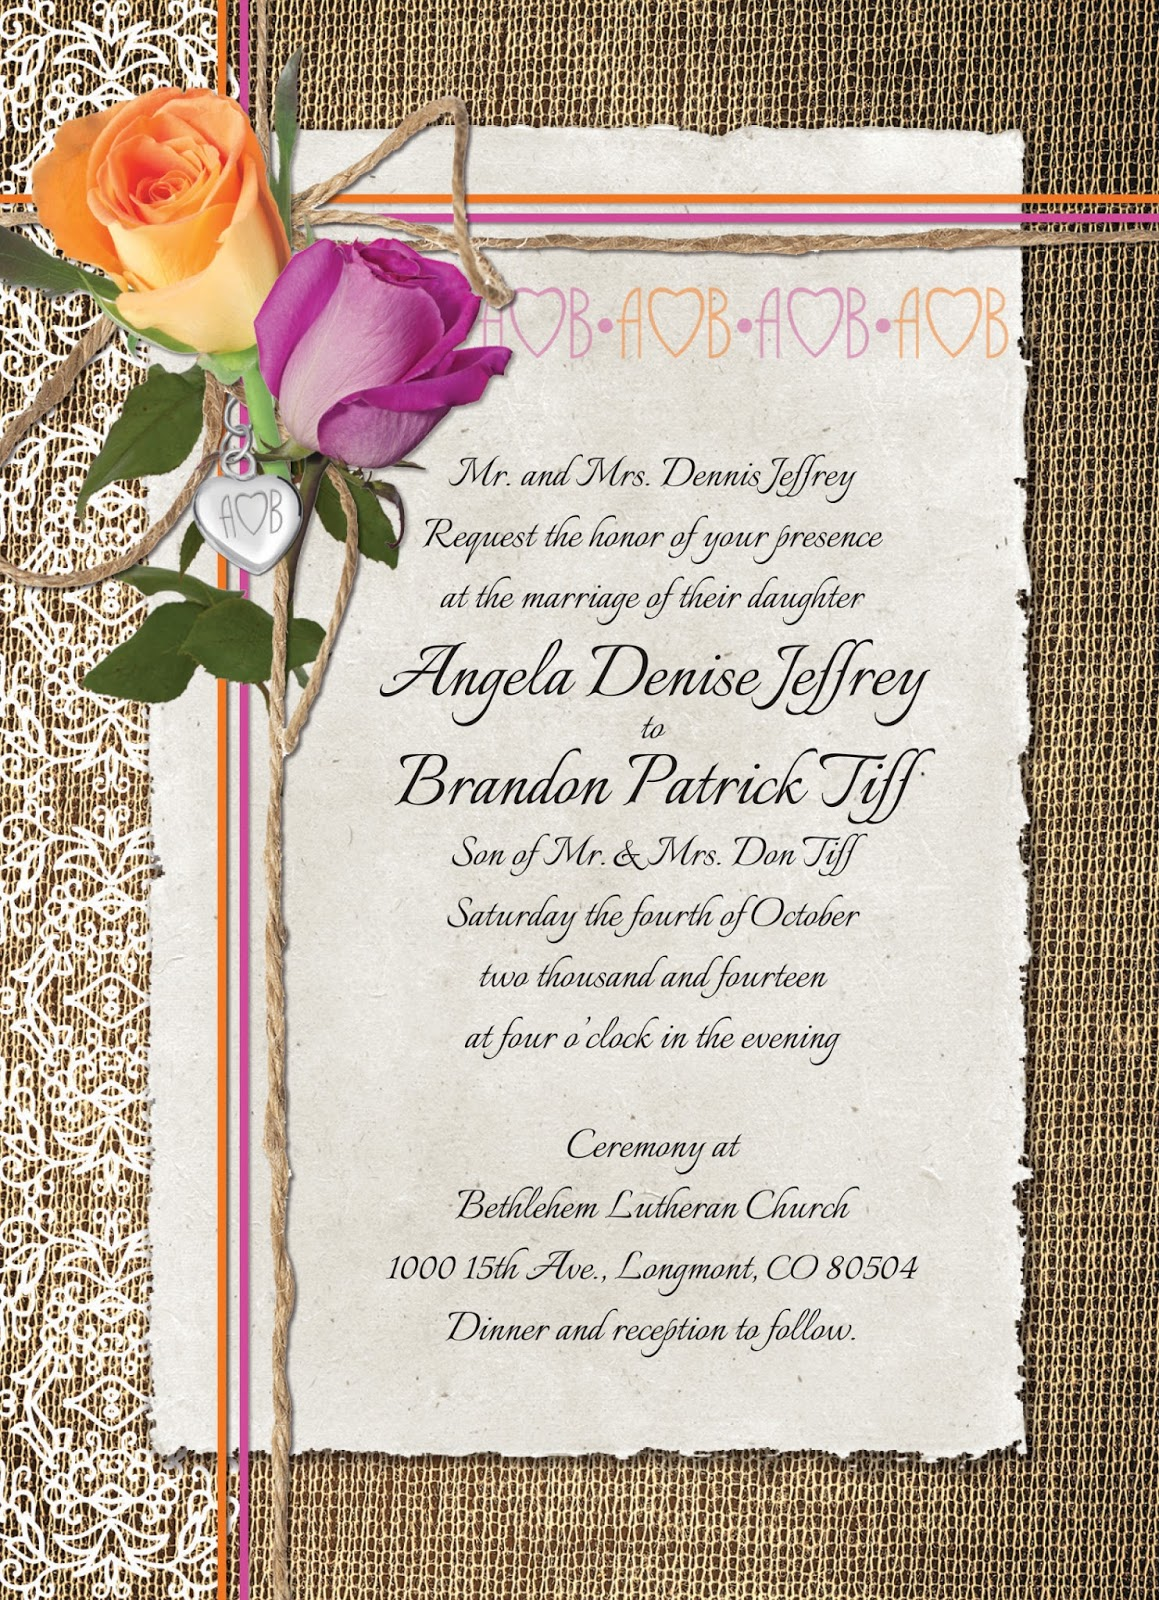 Lola's Type Hype: Angela & Brandon's Wedding Invitation